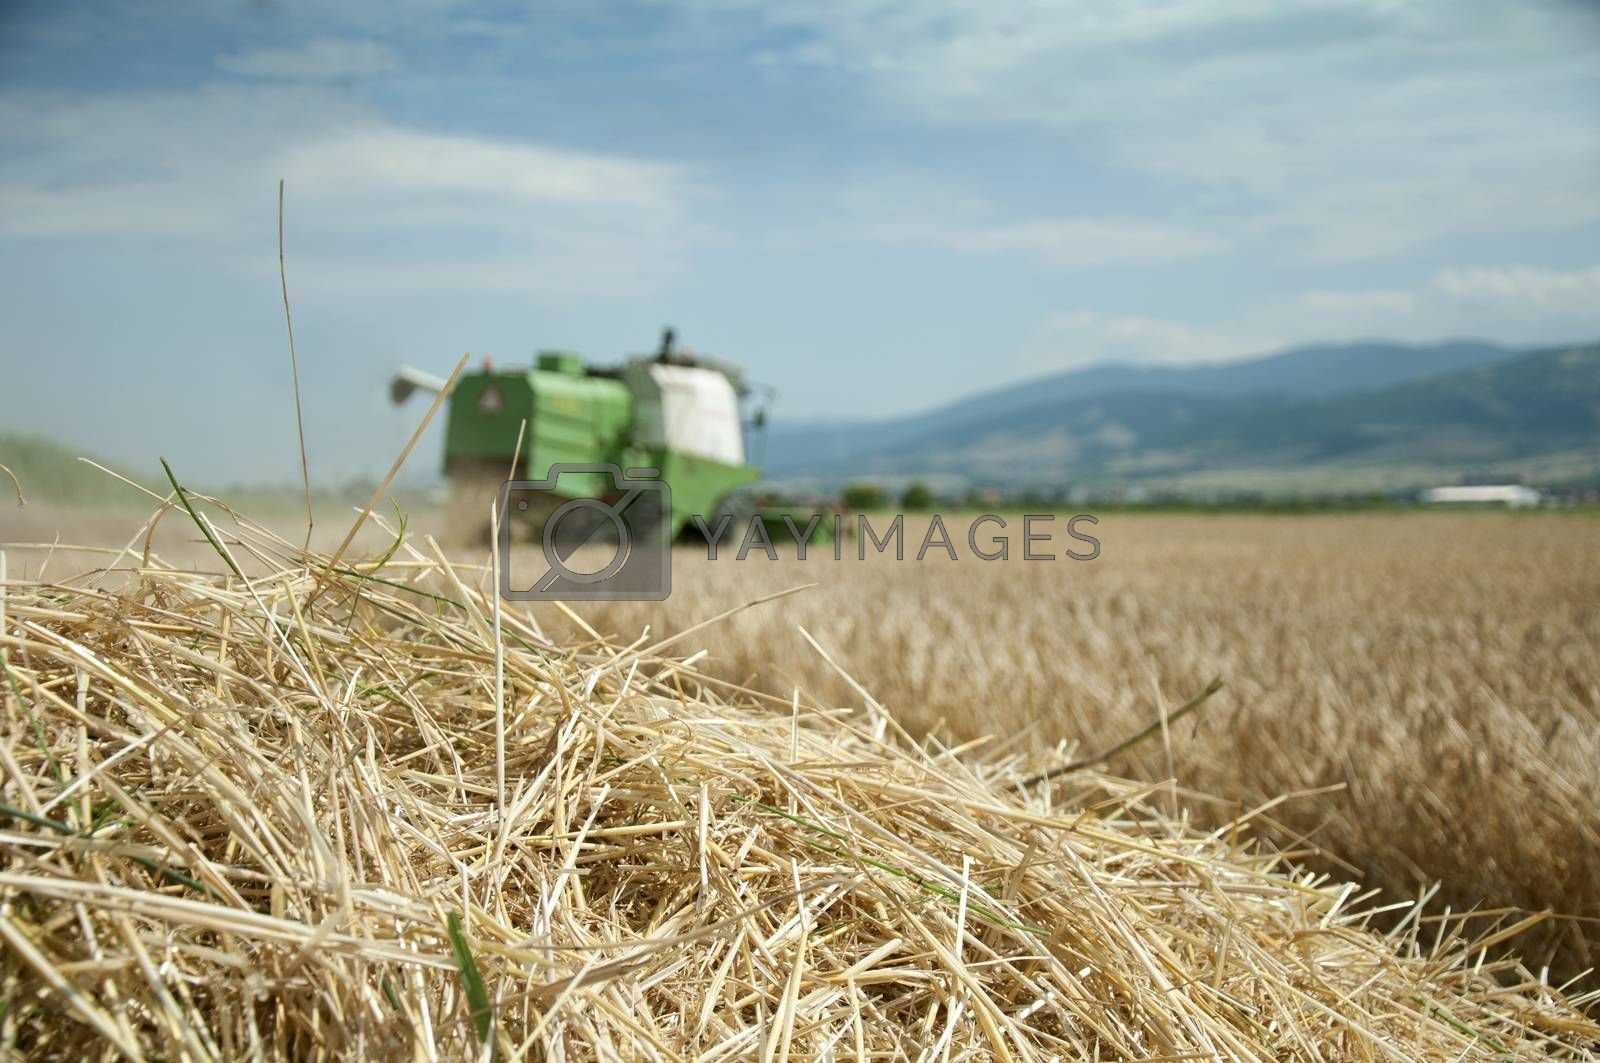 Tractor and combine harvested. Sunny summer day